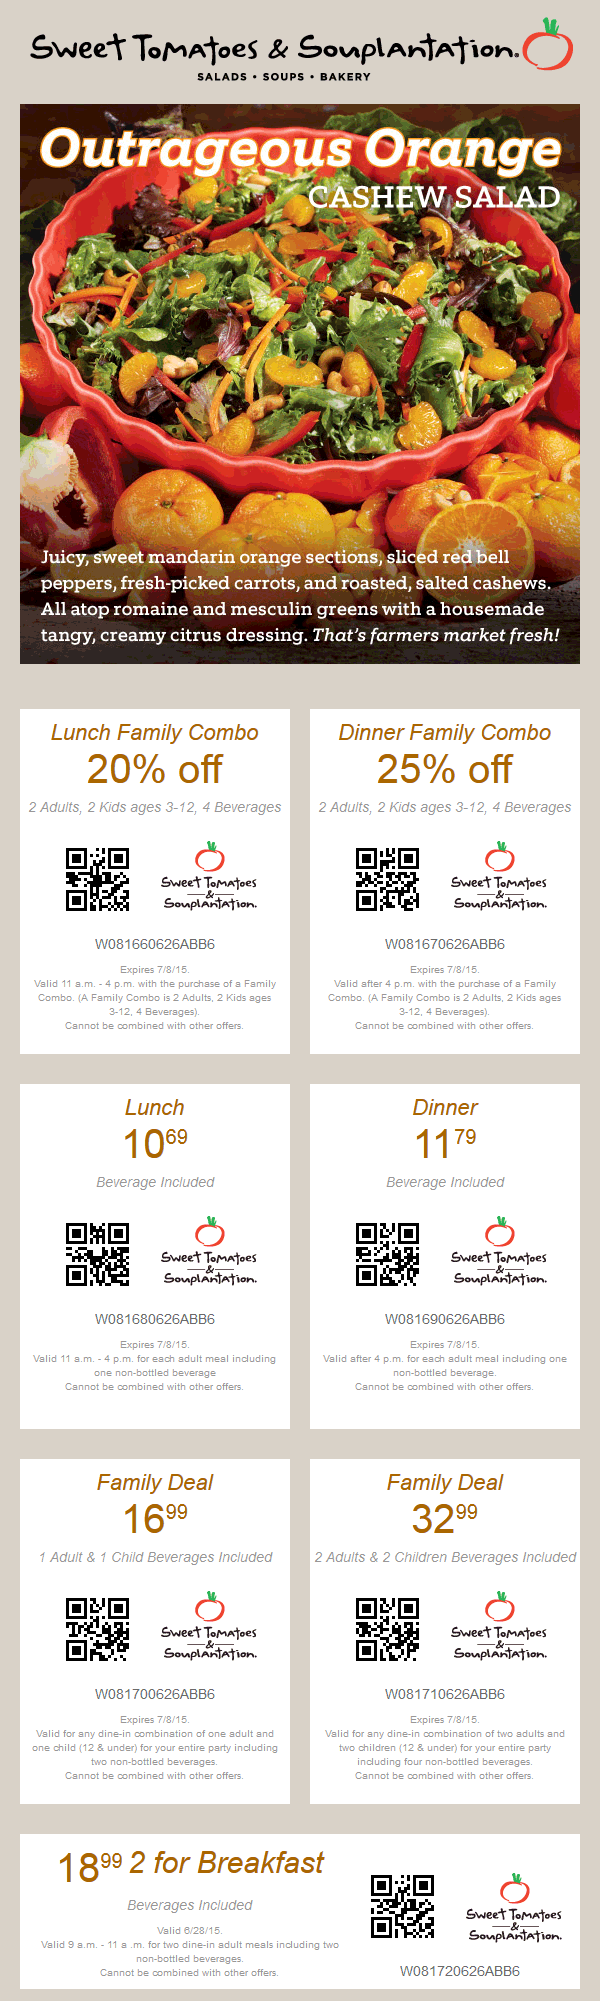 Sweet Tomatoes Coupon April 2018 20% off lunch, 25% off dinner & more at Souplantation & Sweet Tomatoes